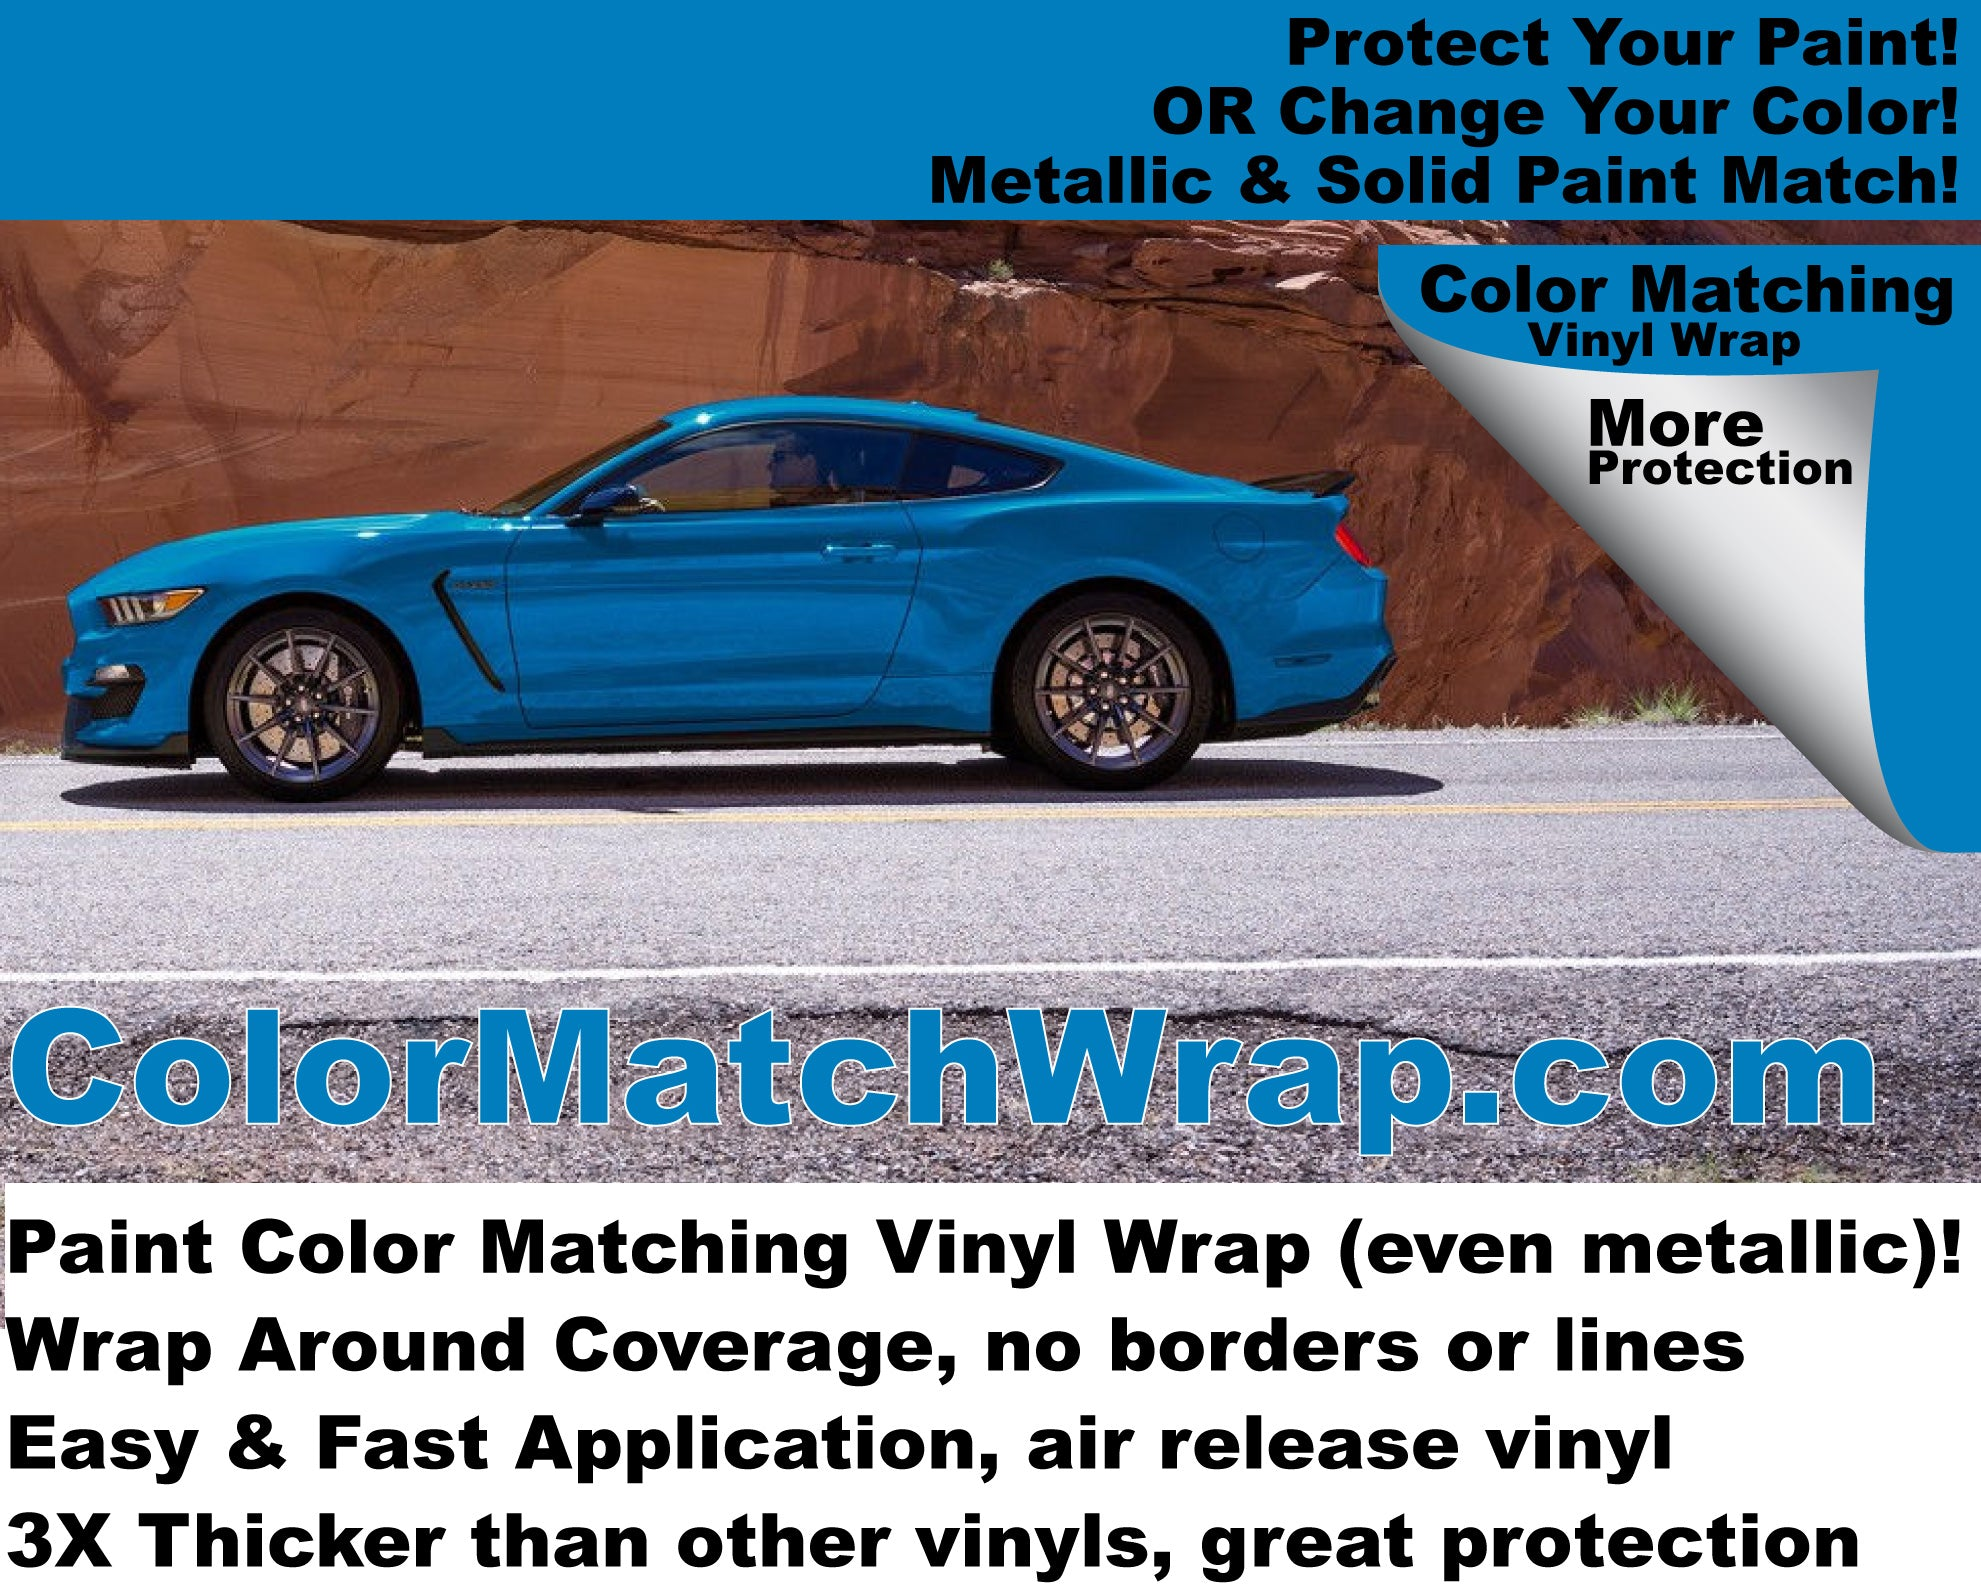 2017 Ford Mustang Vinyl Wrap: Protective Paint Color Match Vinyl Wrap